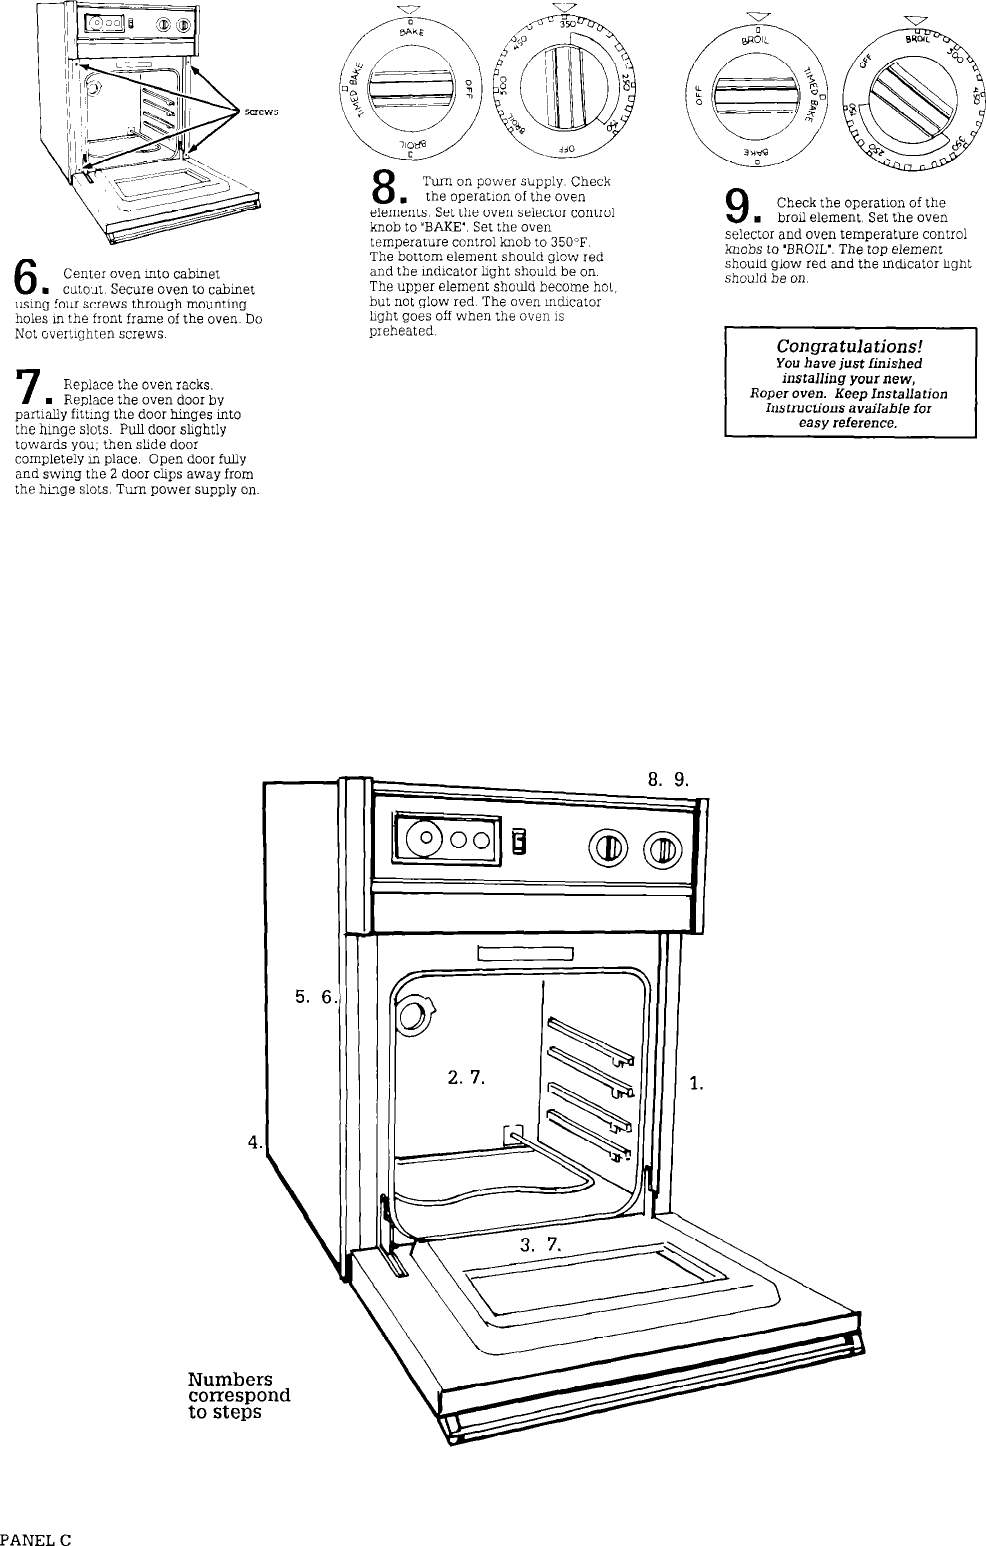 GE Convection Oven Unknown User Manual To The 32866e21 6bdb ... on